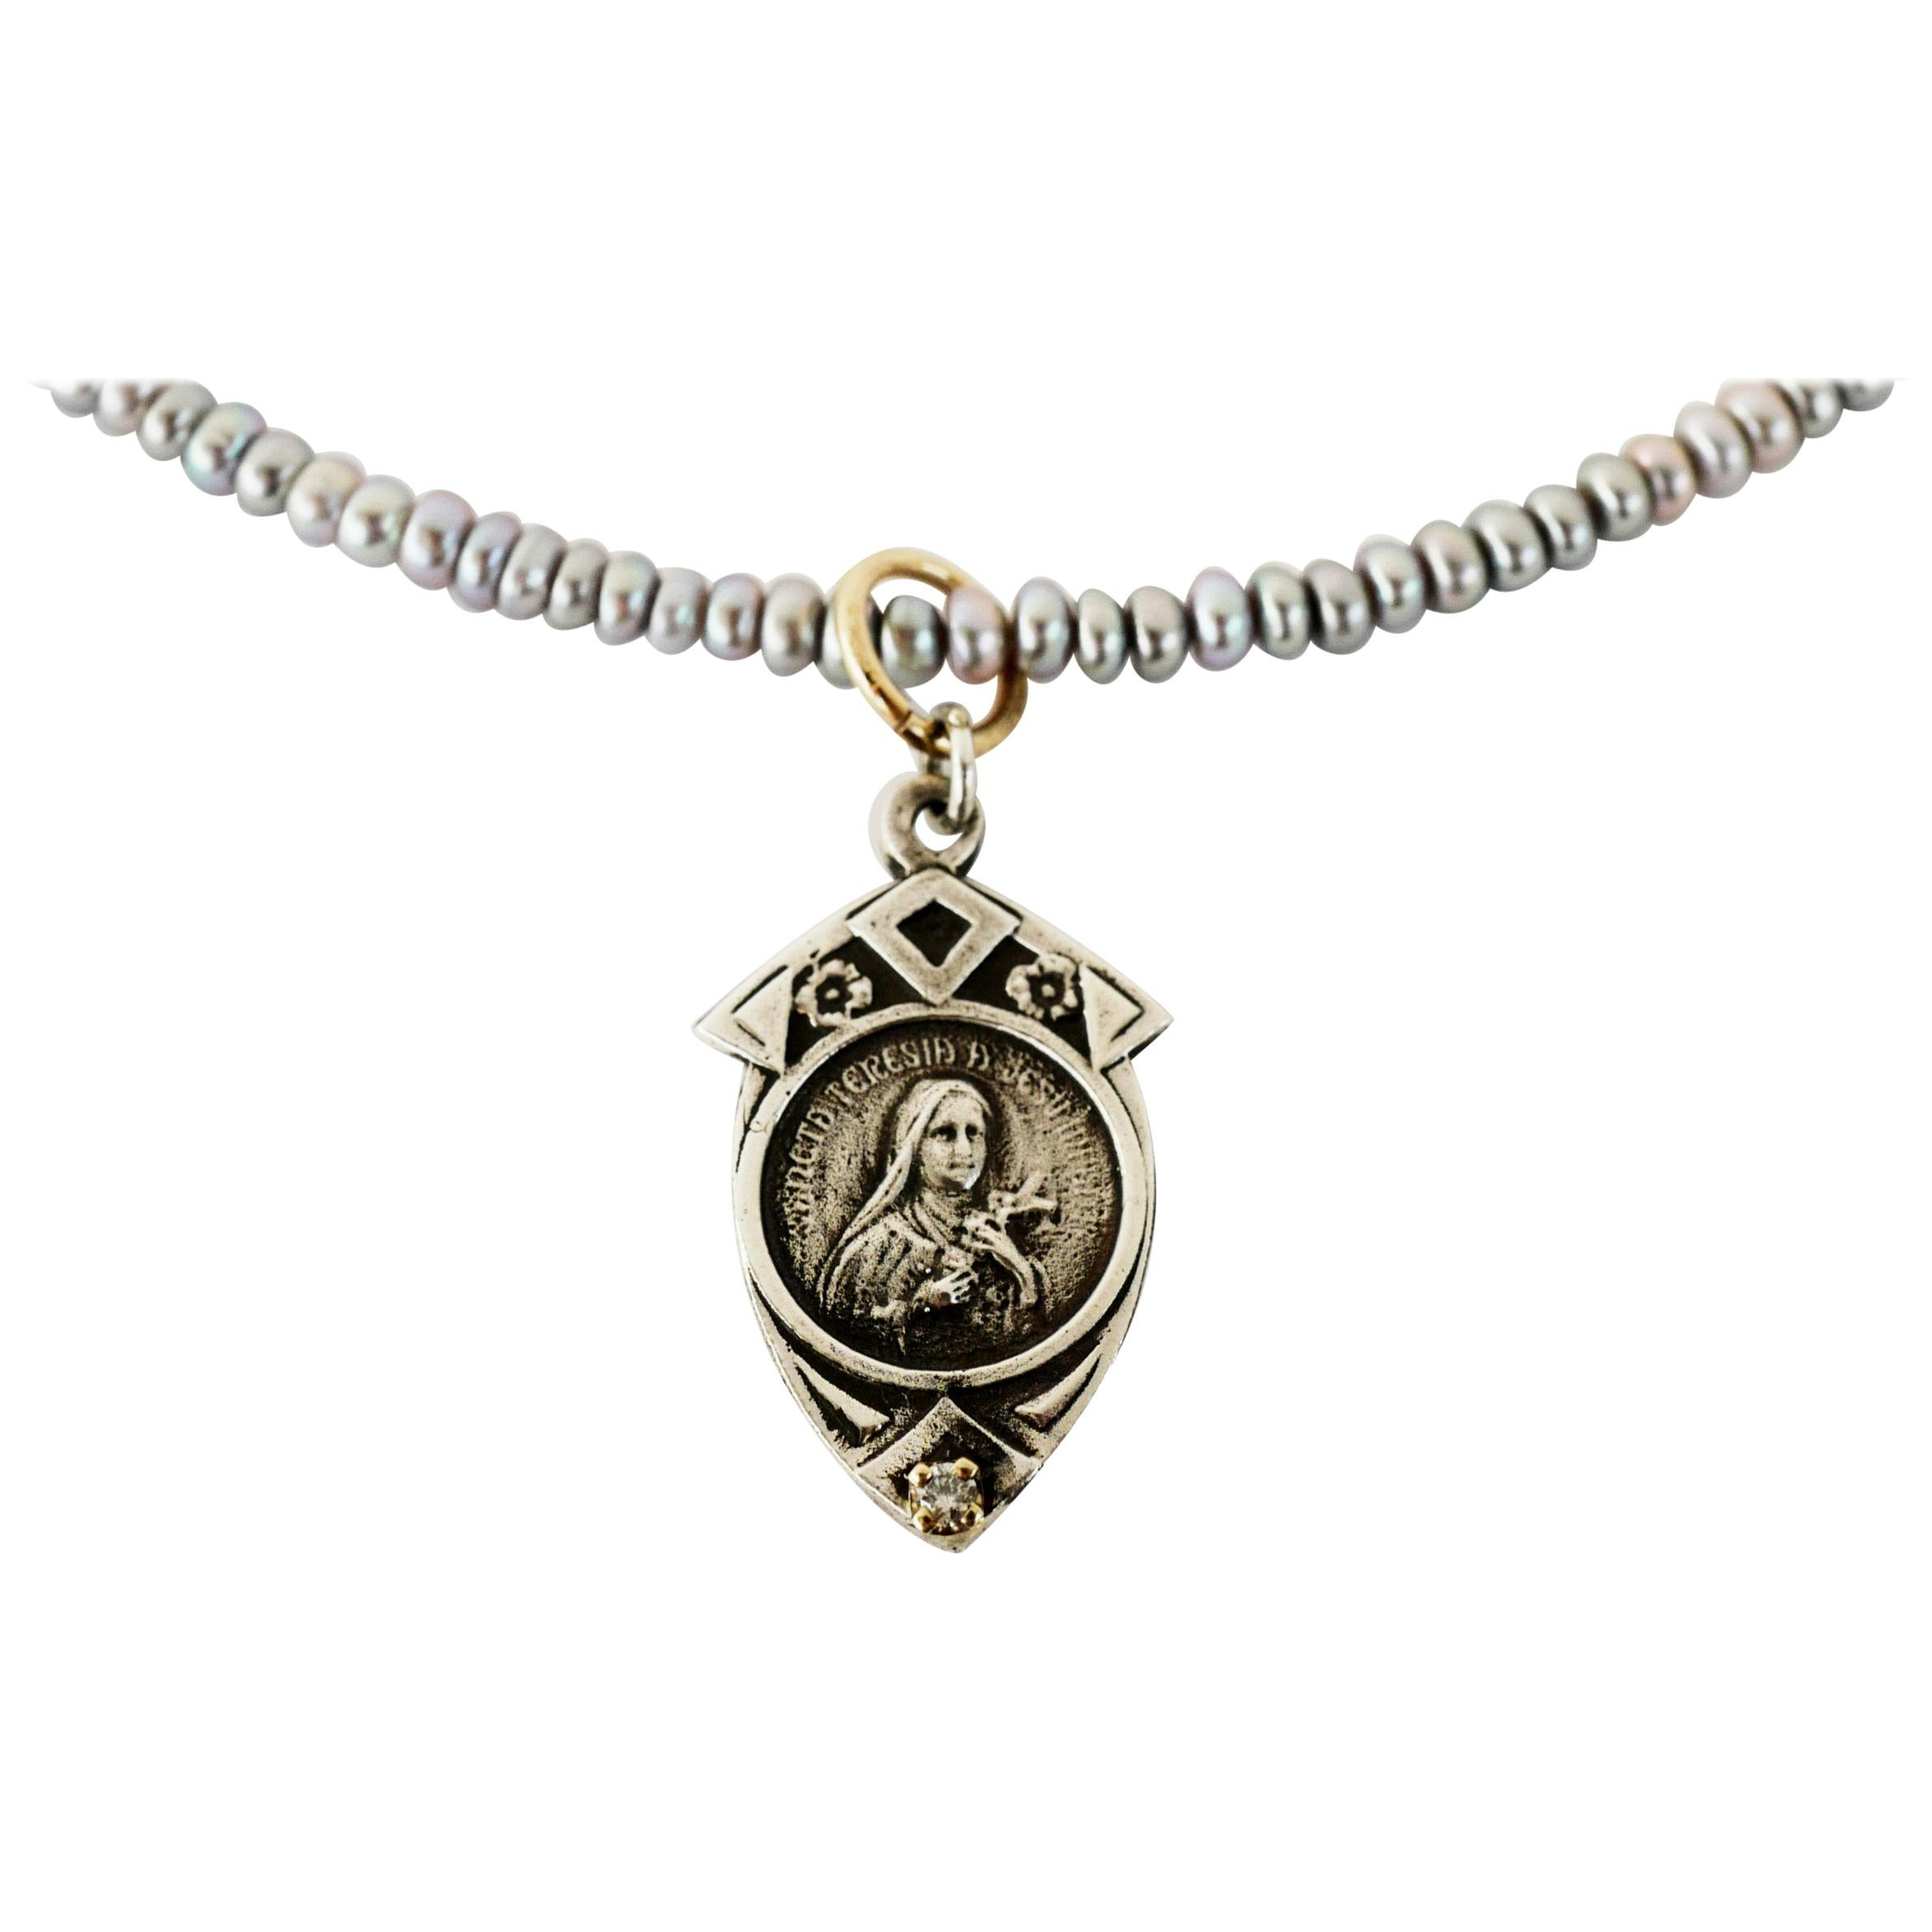 Medal Virgin Mary Necklace Bead Silver Pendant Pearl Turquoise J Dauphin